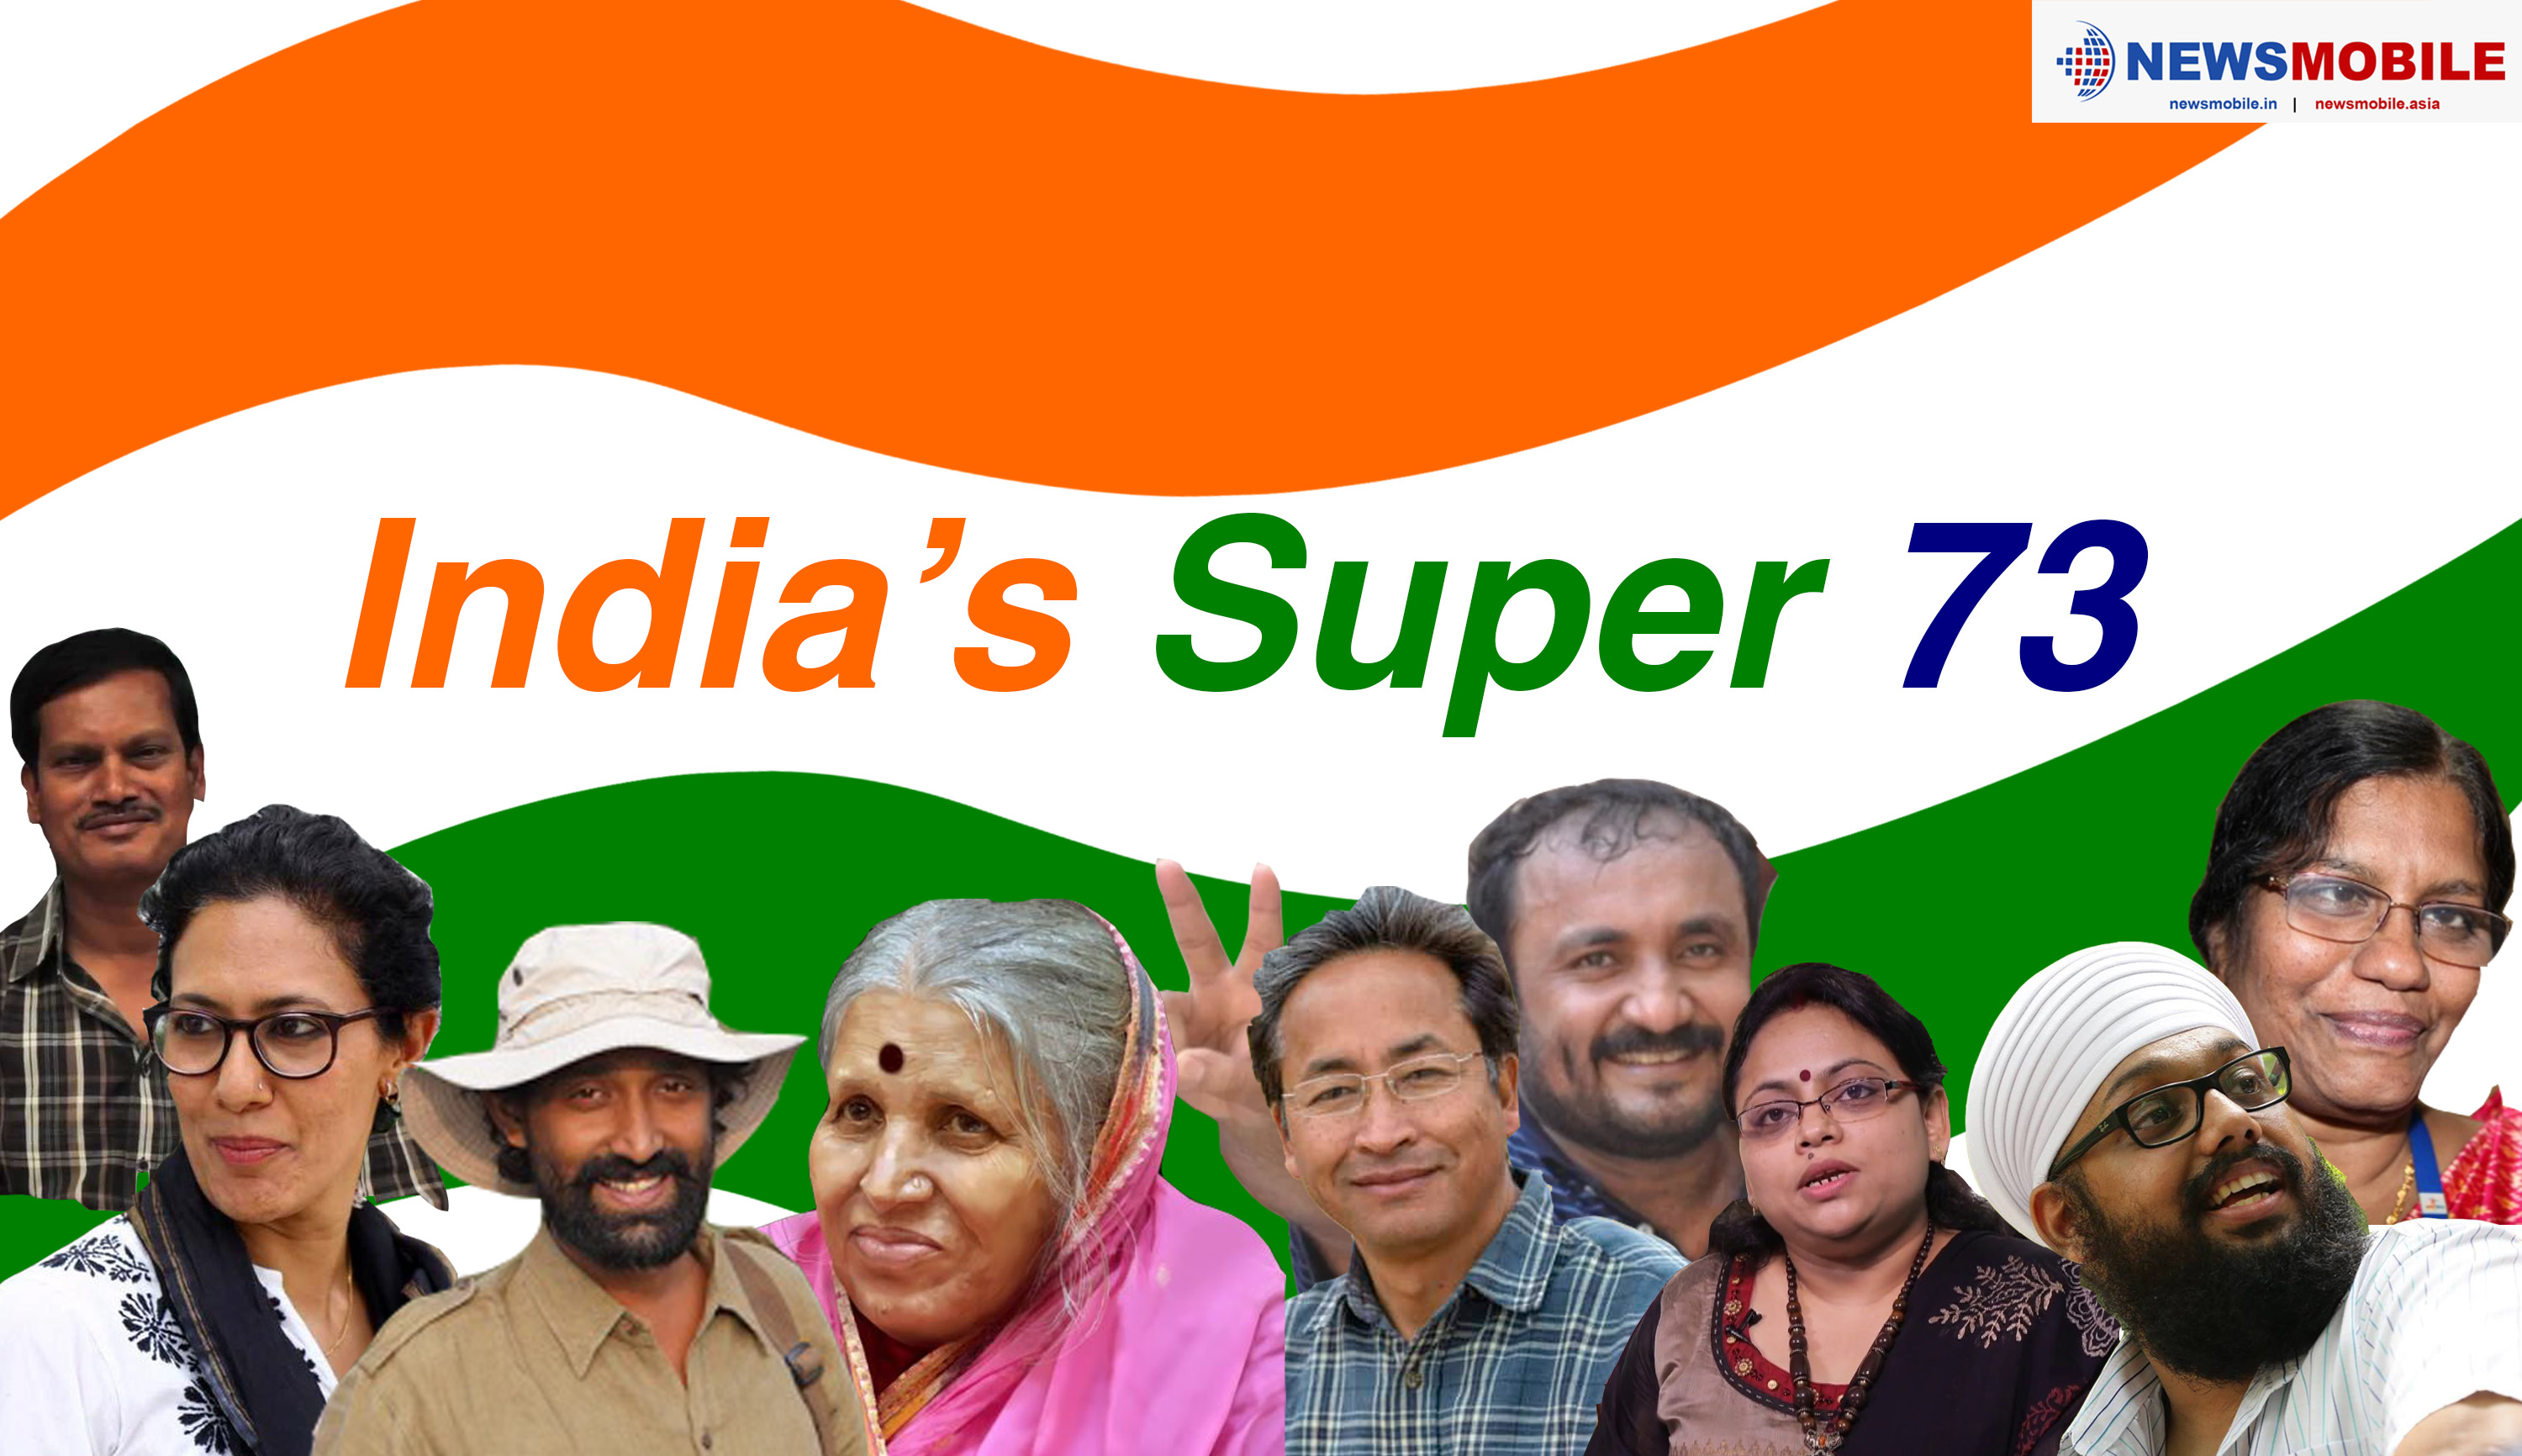 Super, 73, Independence Day, India, Indians, August 15, NewsMobile, Mobile, News, India